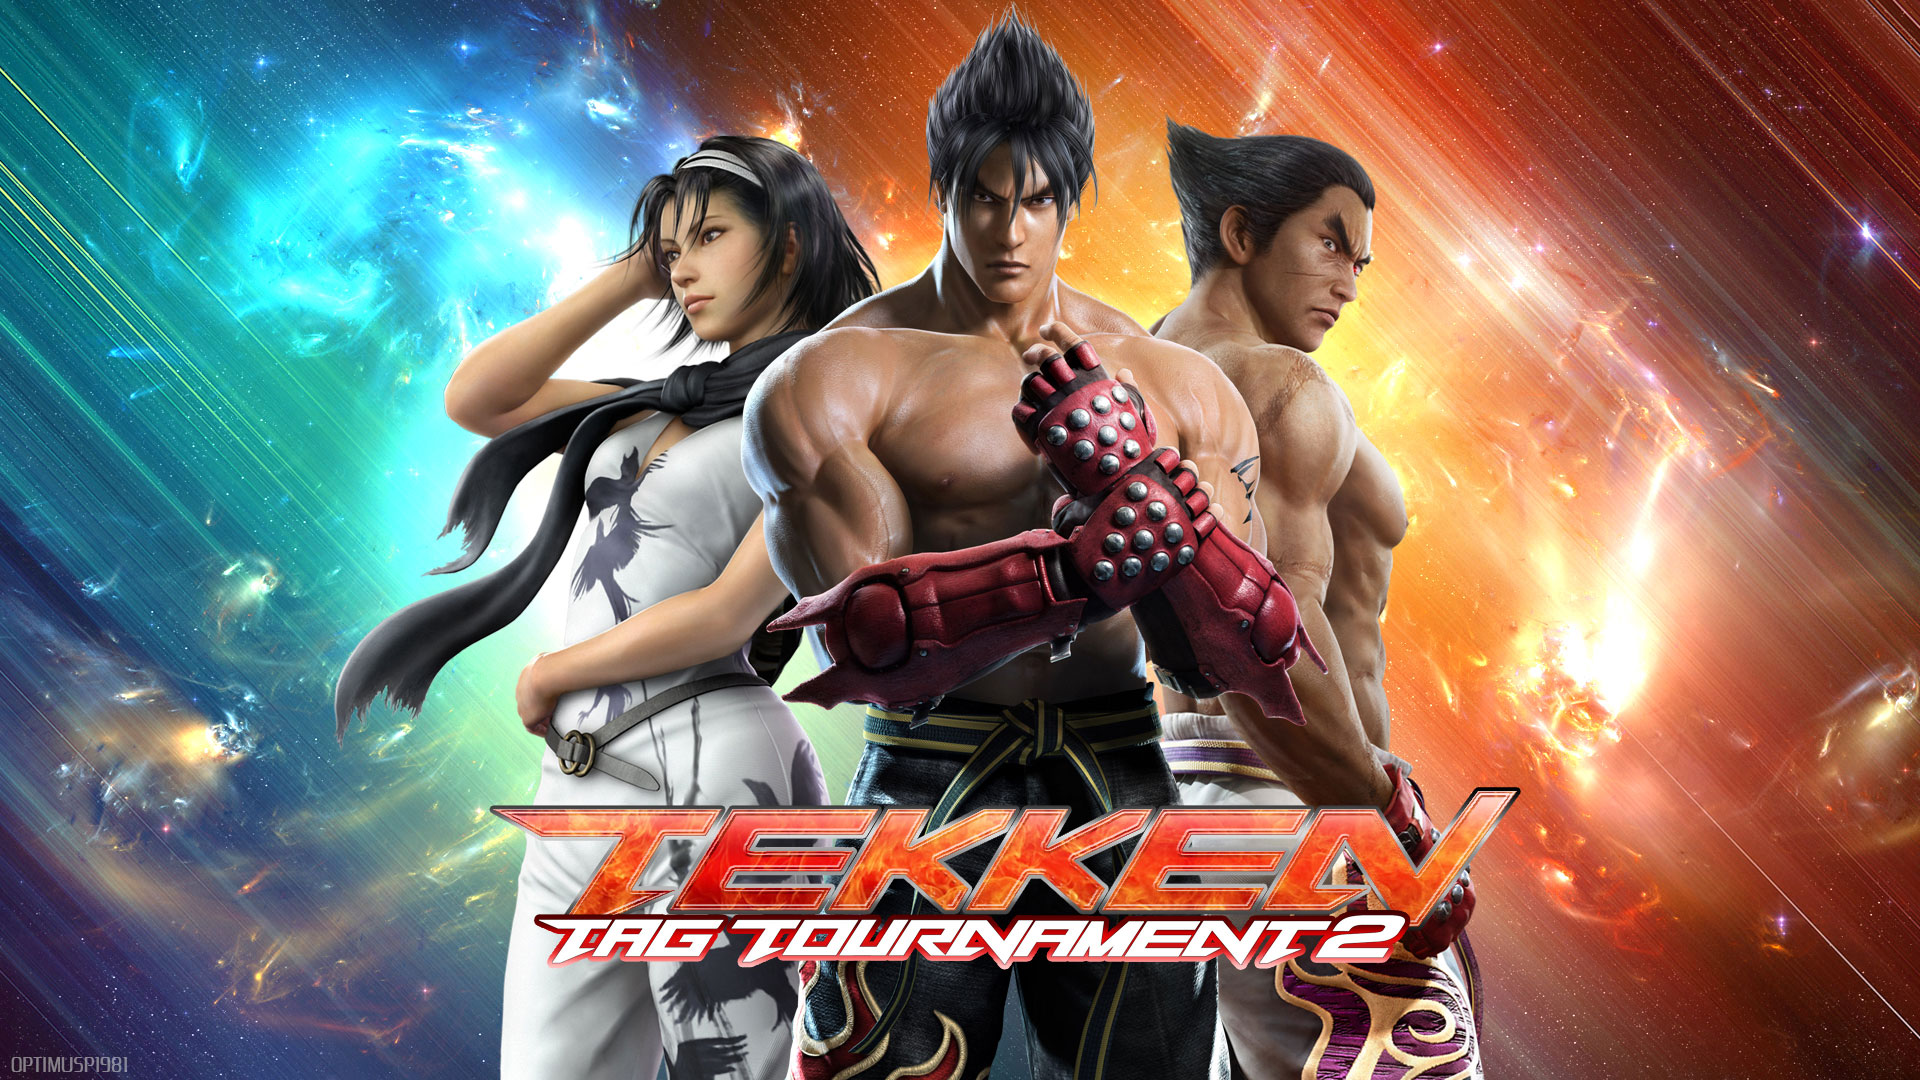 Tekken tag tournament 2 1920x1080 wallpaper gamerswallpaperscom jpeg